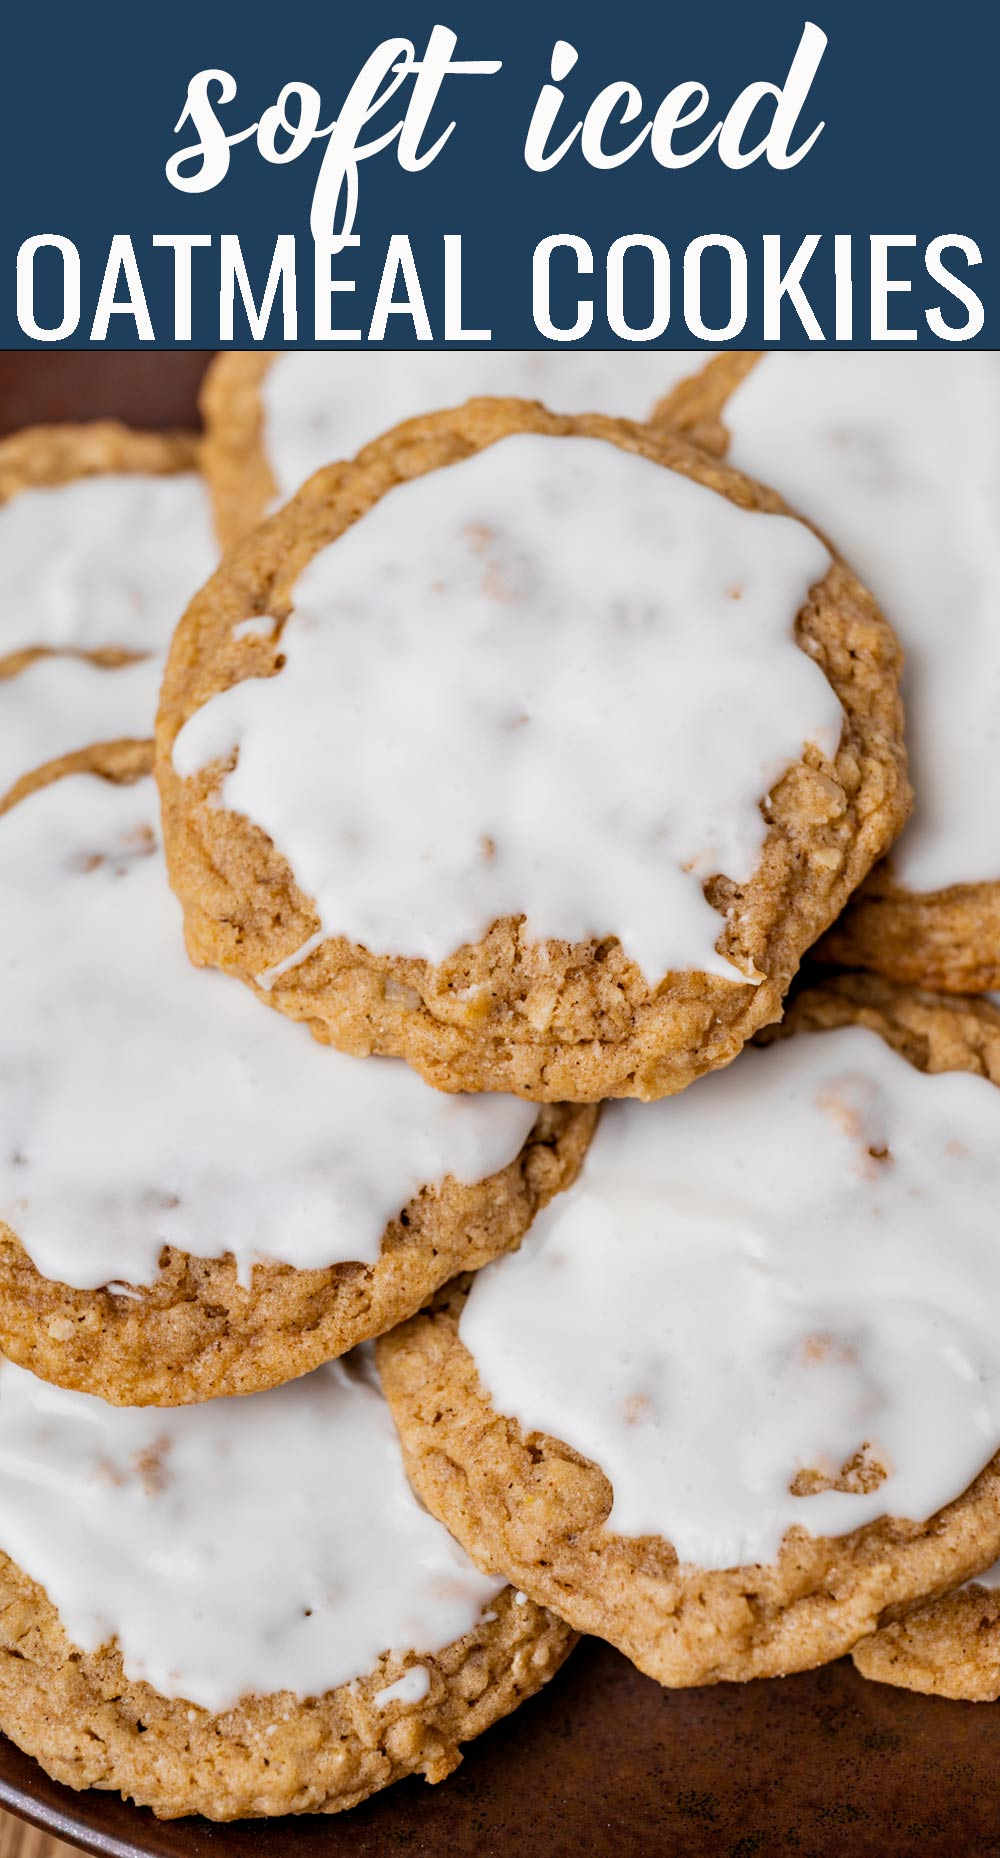 There's nothing like an old fashioned oatmeal cookie! These iced oatmeal cookies are easy to mix up and the perfect after school snack for your kids. via @tastesoflizzyt